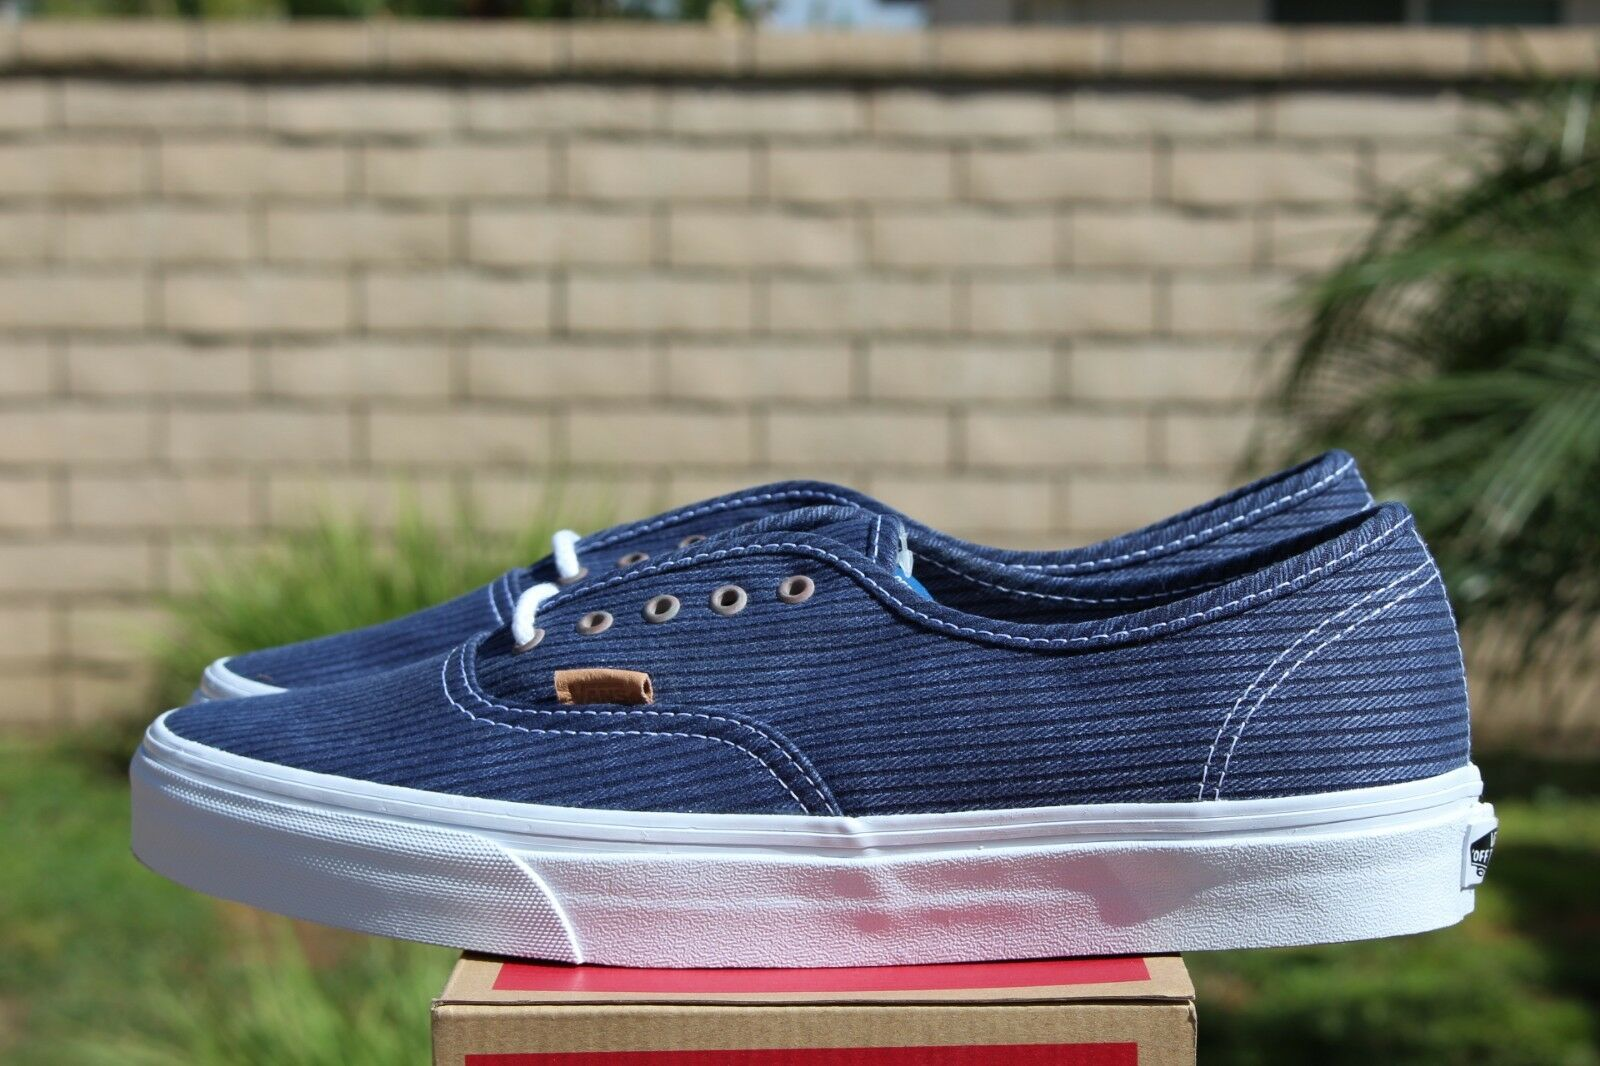 VANS AUTHENTIC CA SZ 11.5 WASHED HERRINGBONE blueE OFF THE WALL OTW VN 0ZUIFQS